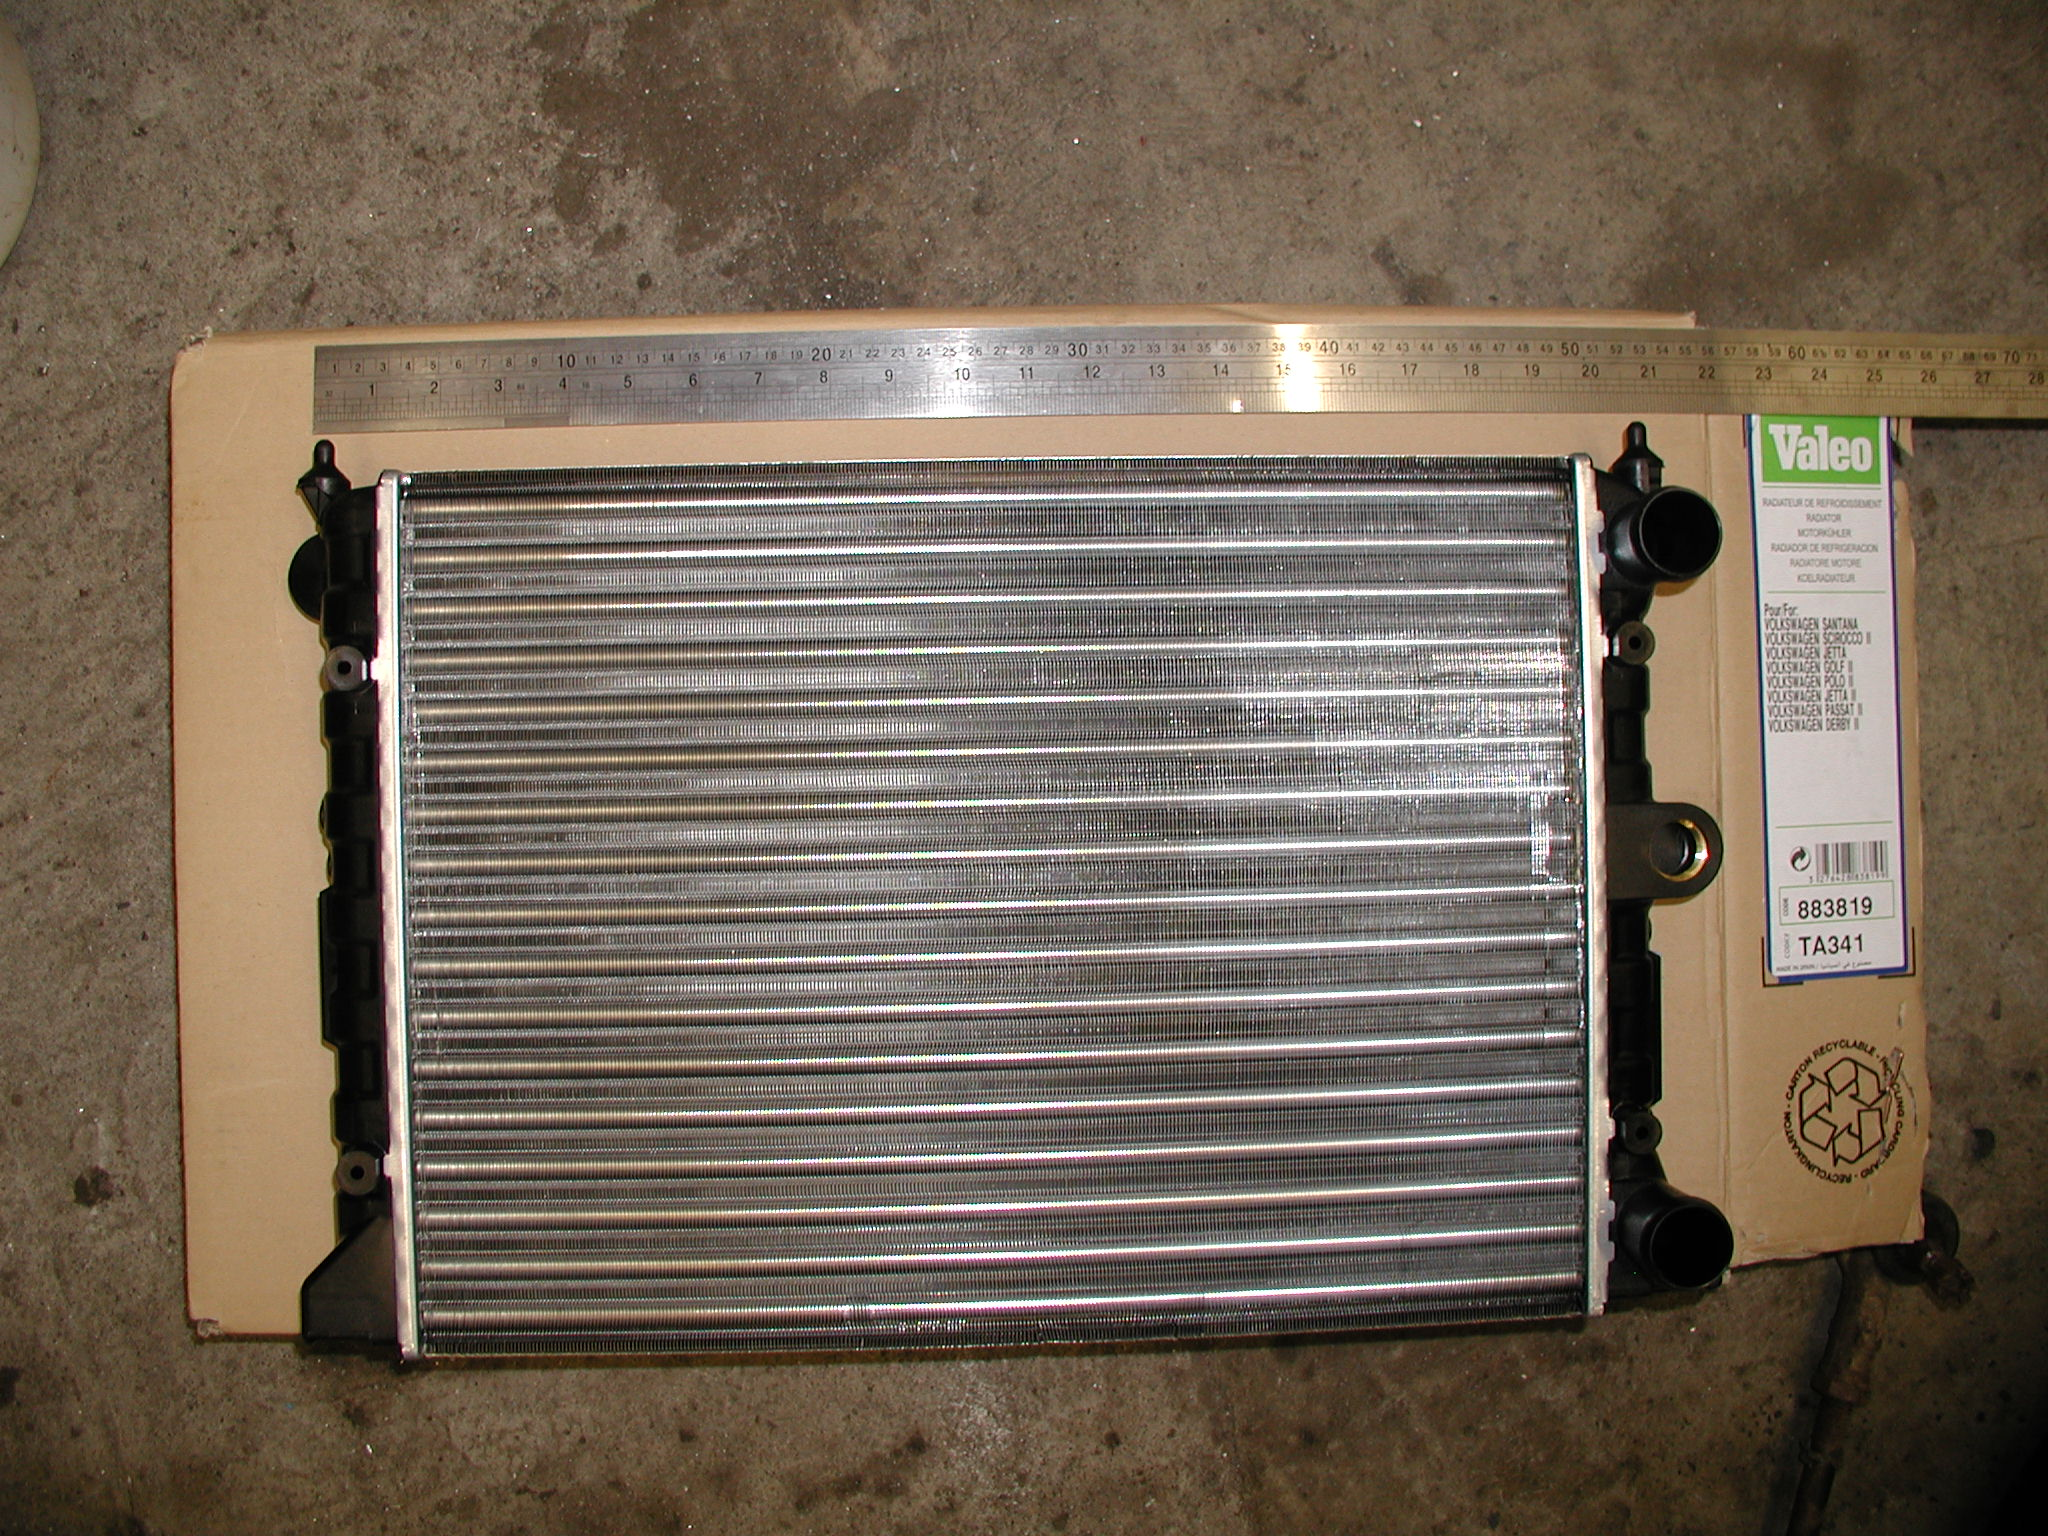 Here is a radiator which I purchased recently. It is used in a variety of Volkswagon cars including the Passat 1.8 and several Golf and Polo models. You can find it in my radiator database under OEM part number 171121253CJ or BuyPartsBy part number 883819. It only cost about £45 inc vat and p&p and was delivered next day.